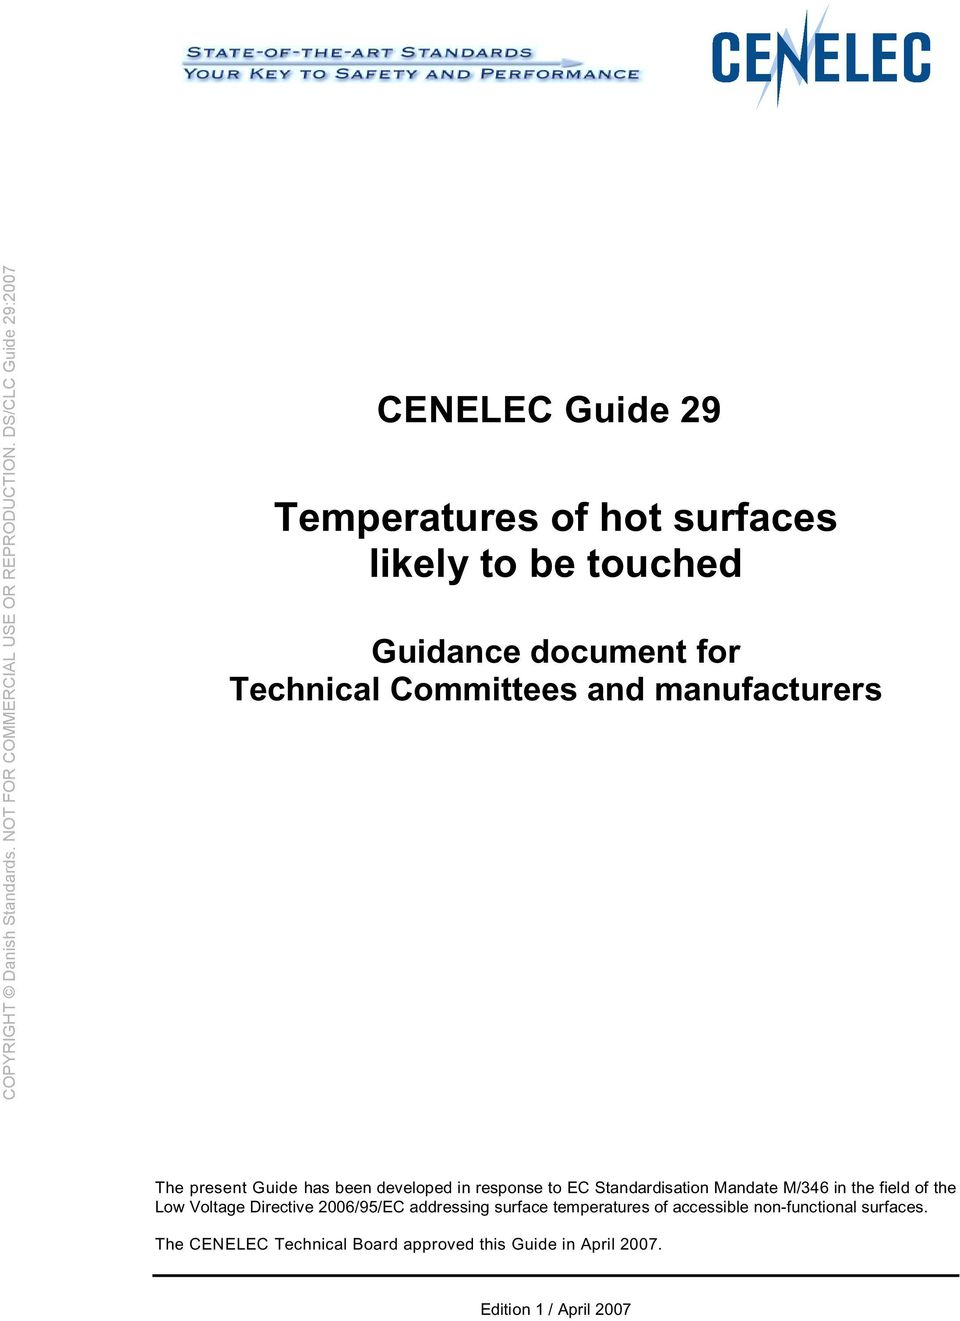 Mandate M/346 in the field of the Low Voltage Directive 2006/95/EC addressing surface temperatures of